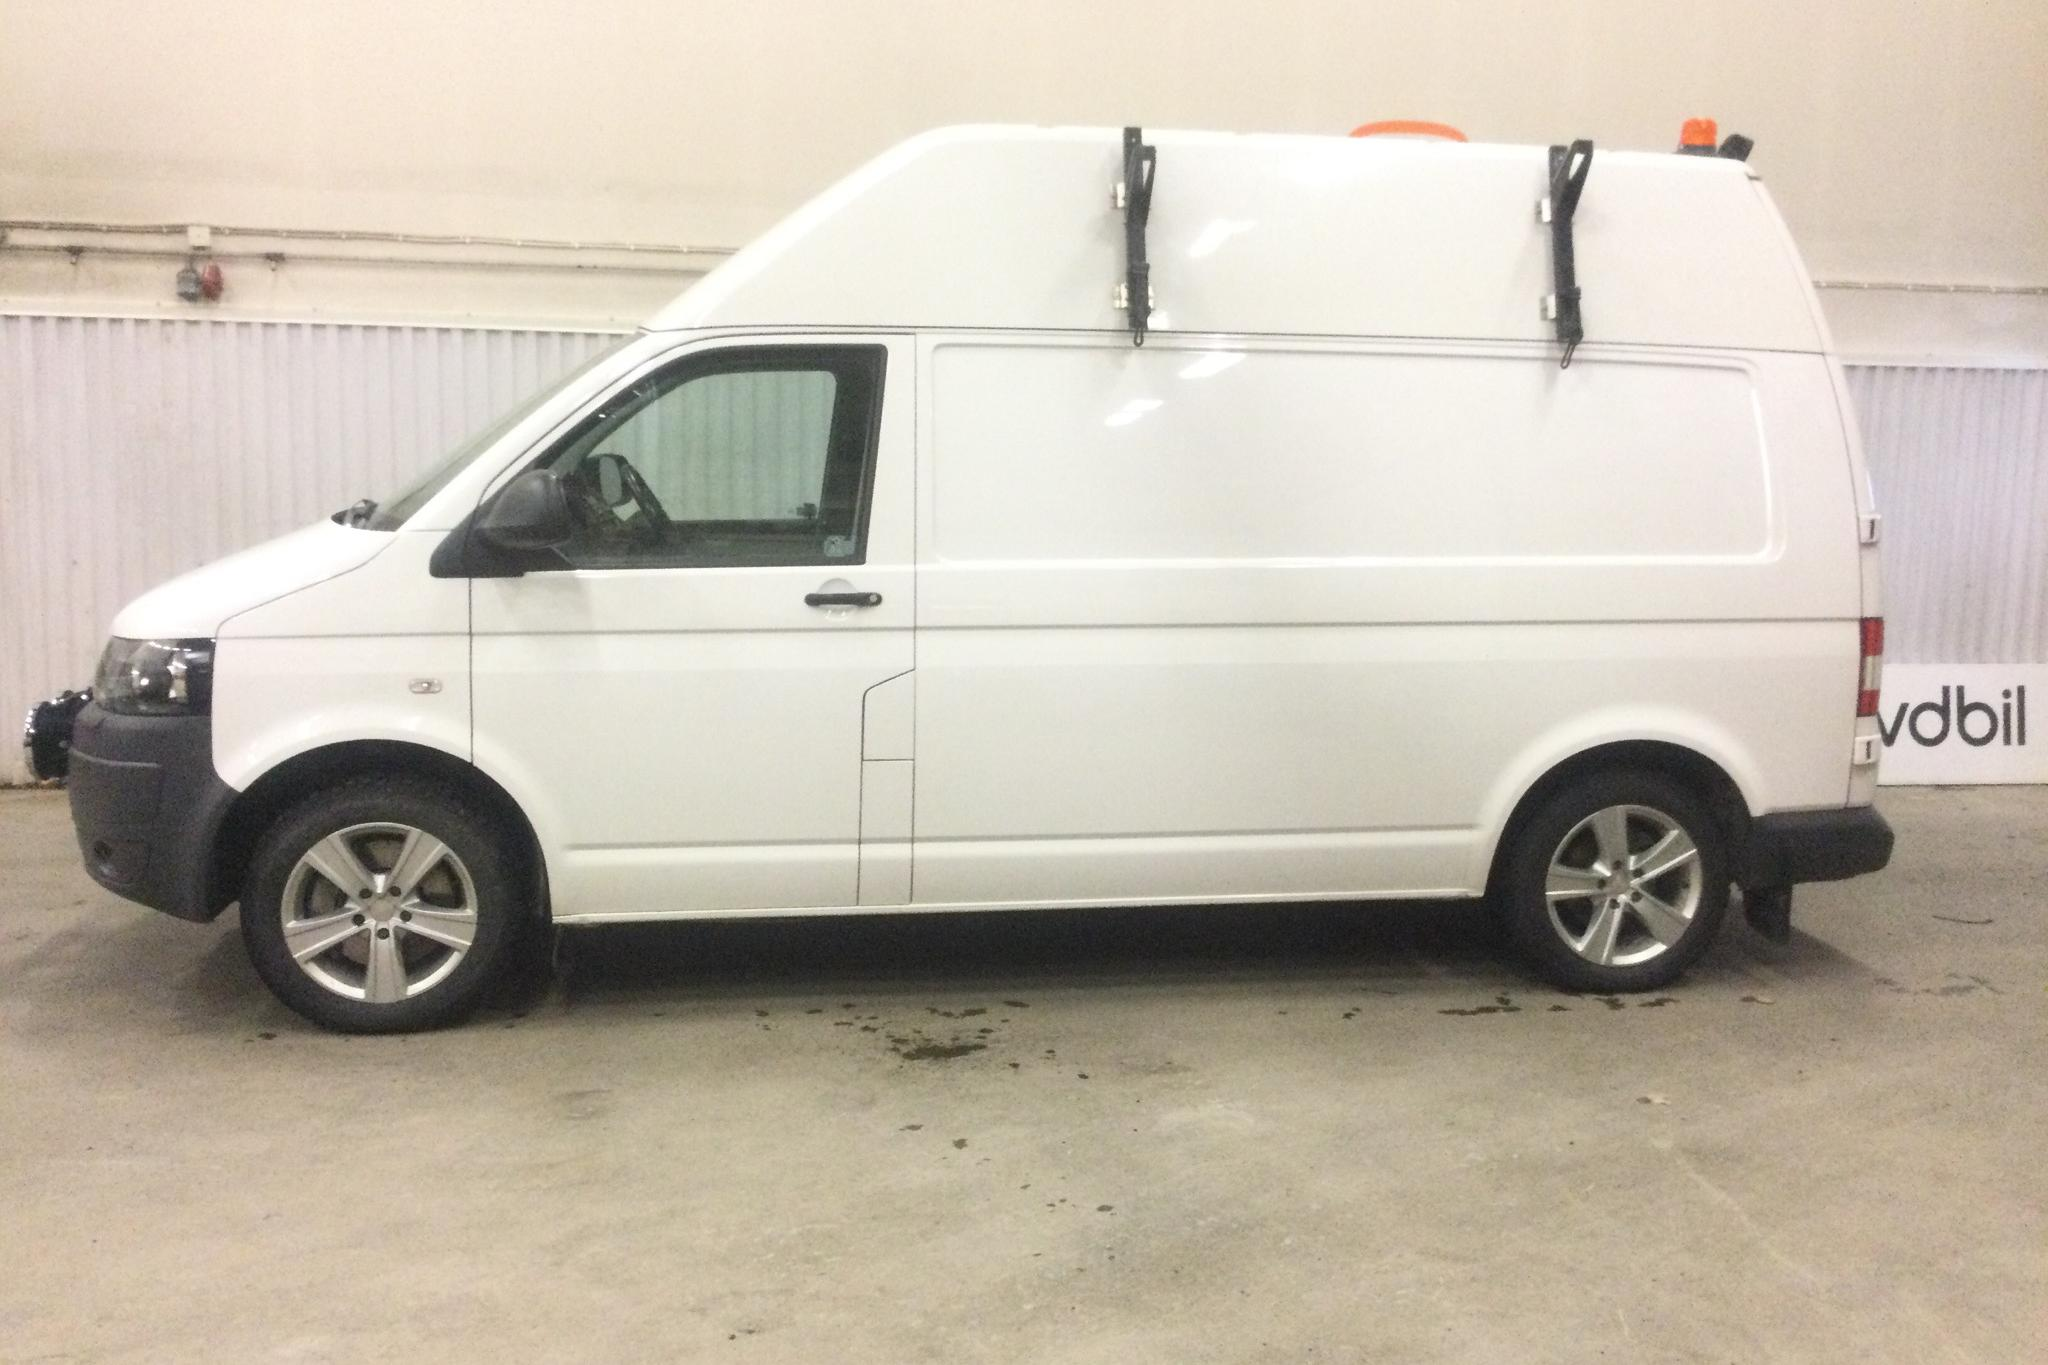 VW Transporter T5 2.0 TDI 4MOTION (180hk) - 145 740 km - Manual - white - 2012